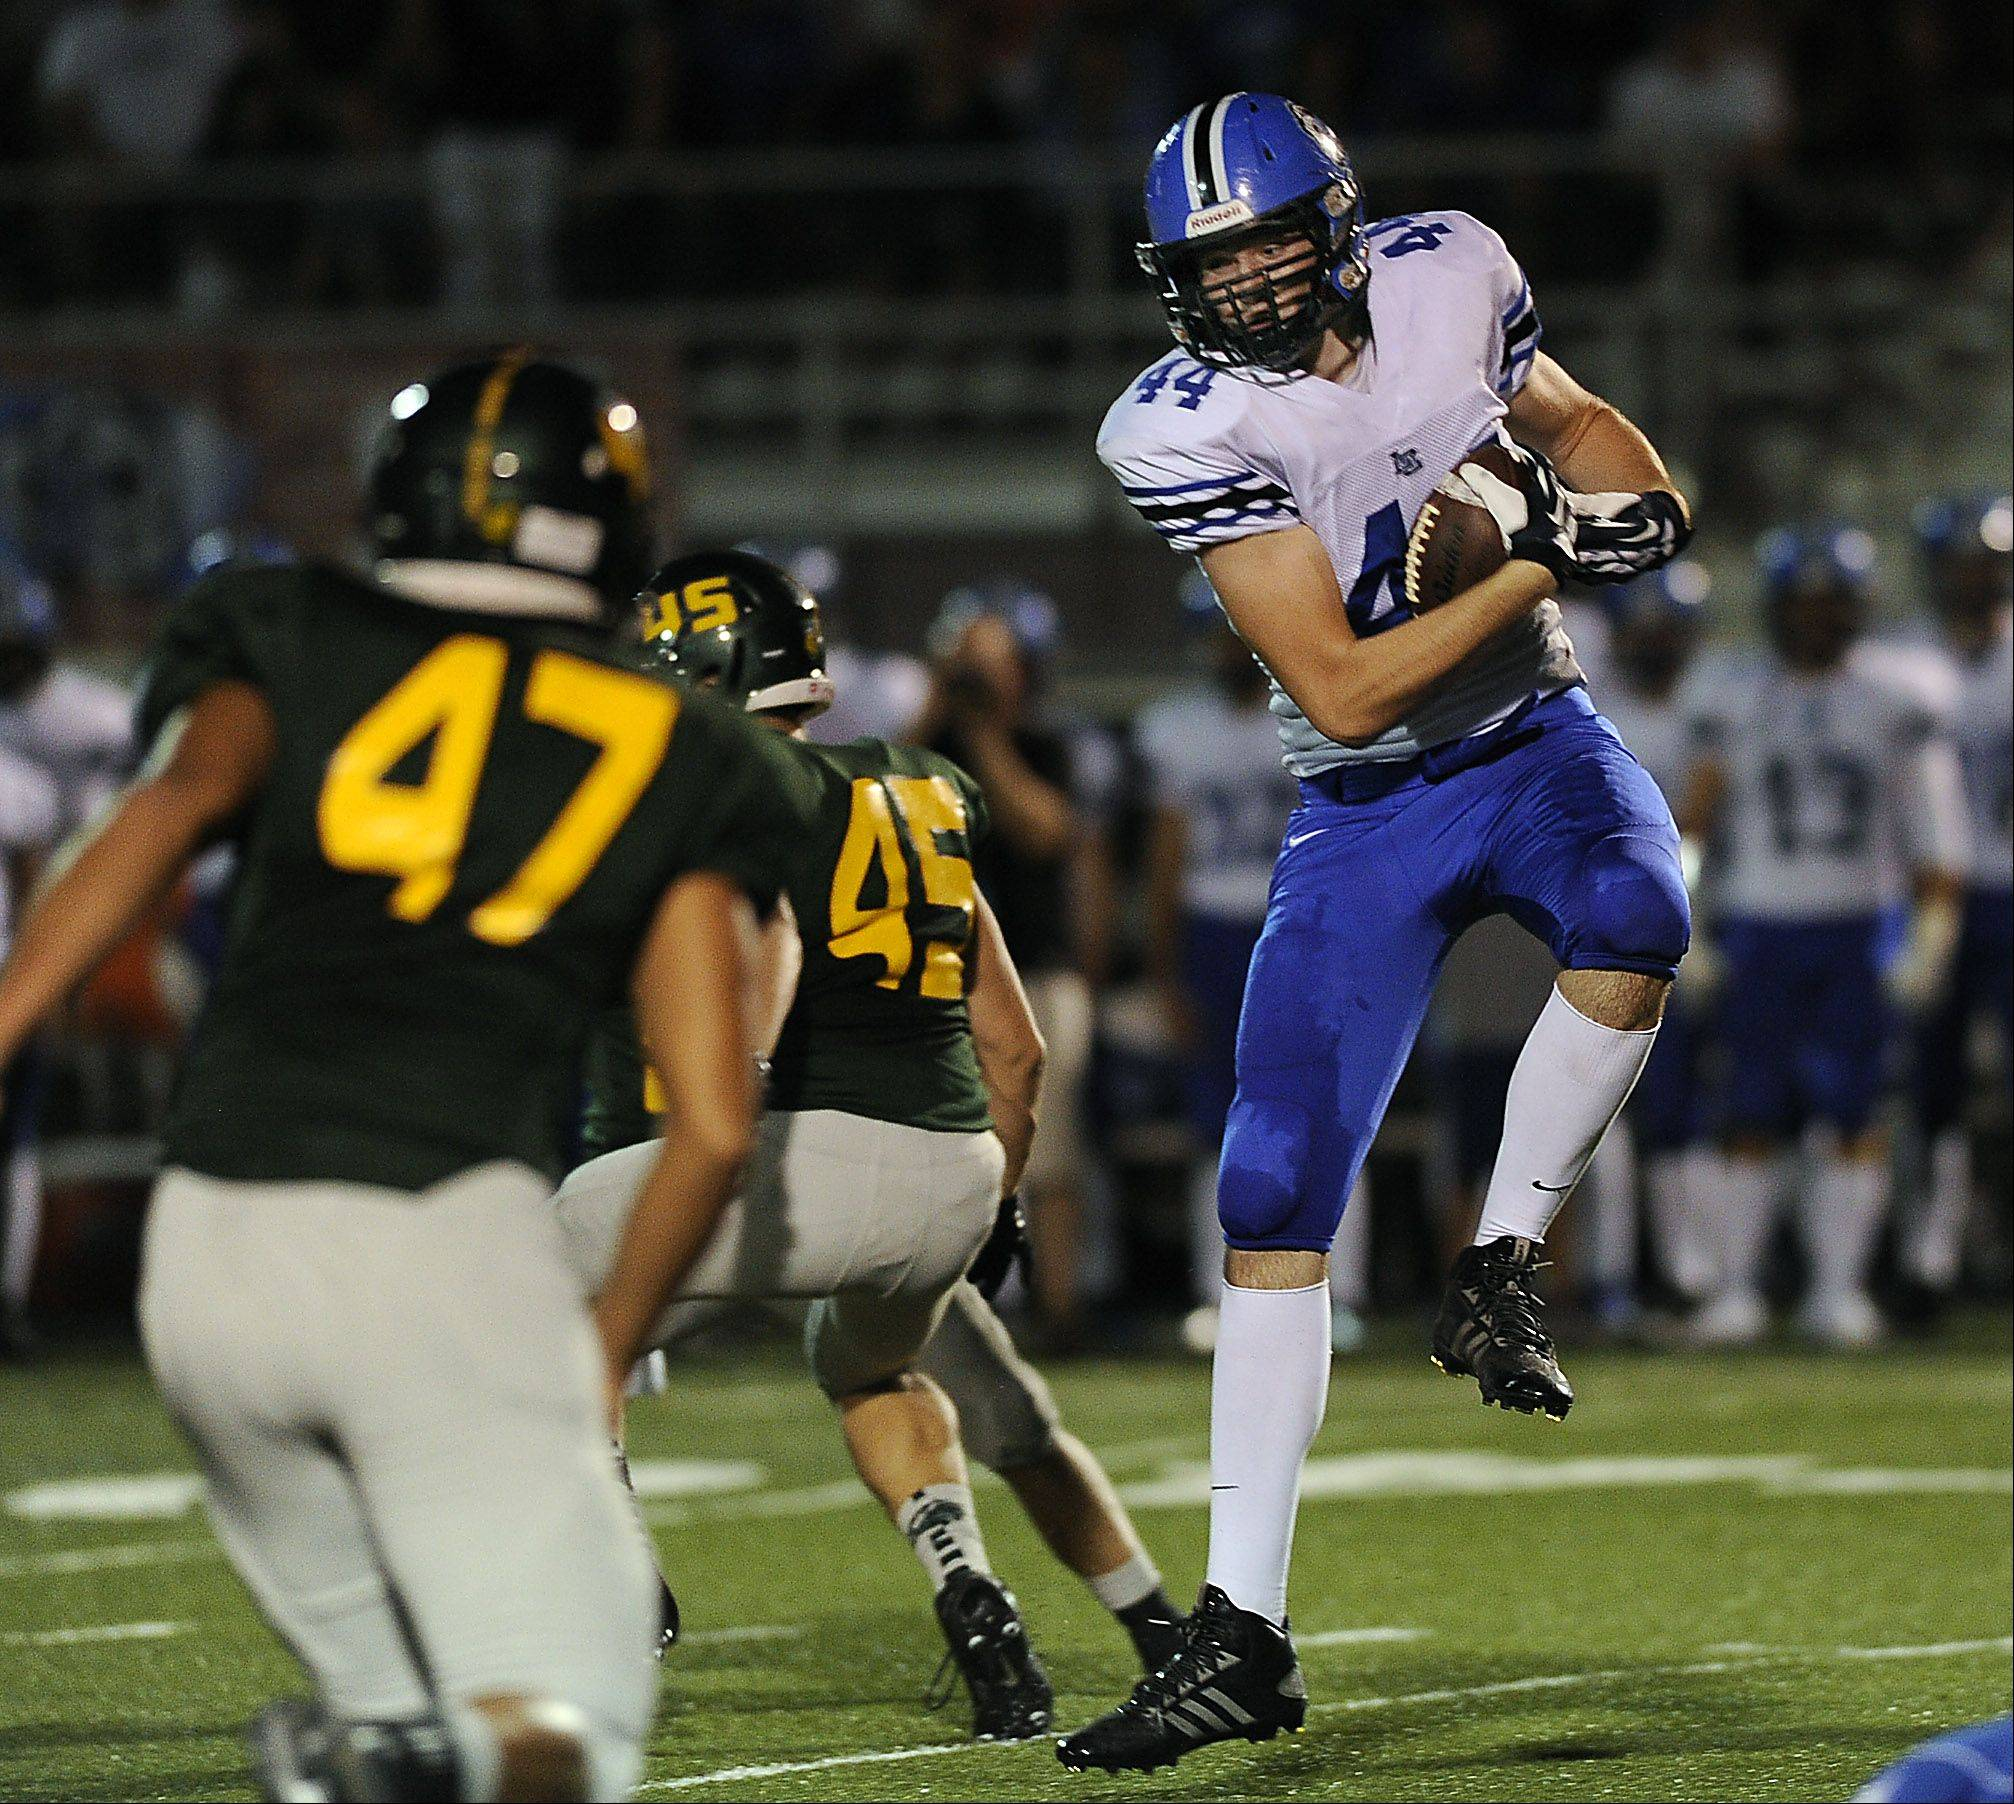 Lake Zurich's Zach Wallace hauls in a first quarter pass play against Fremd's defense in the opening day game at Fremd High School in Palatine on Friday.